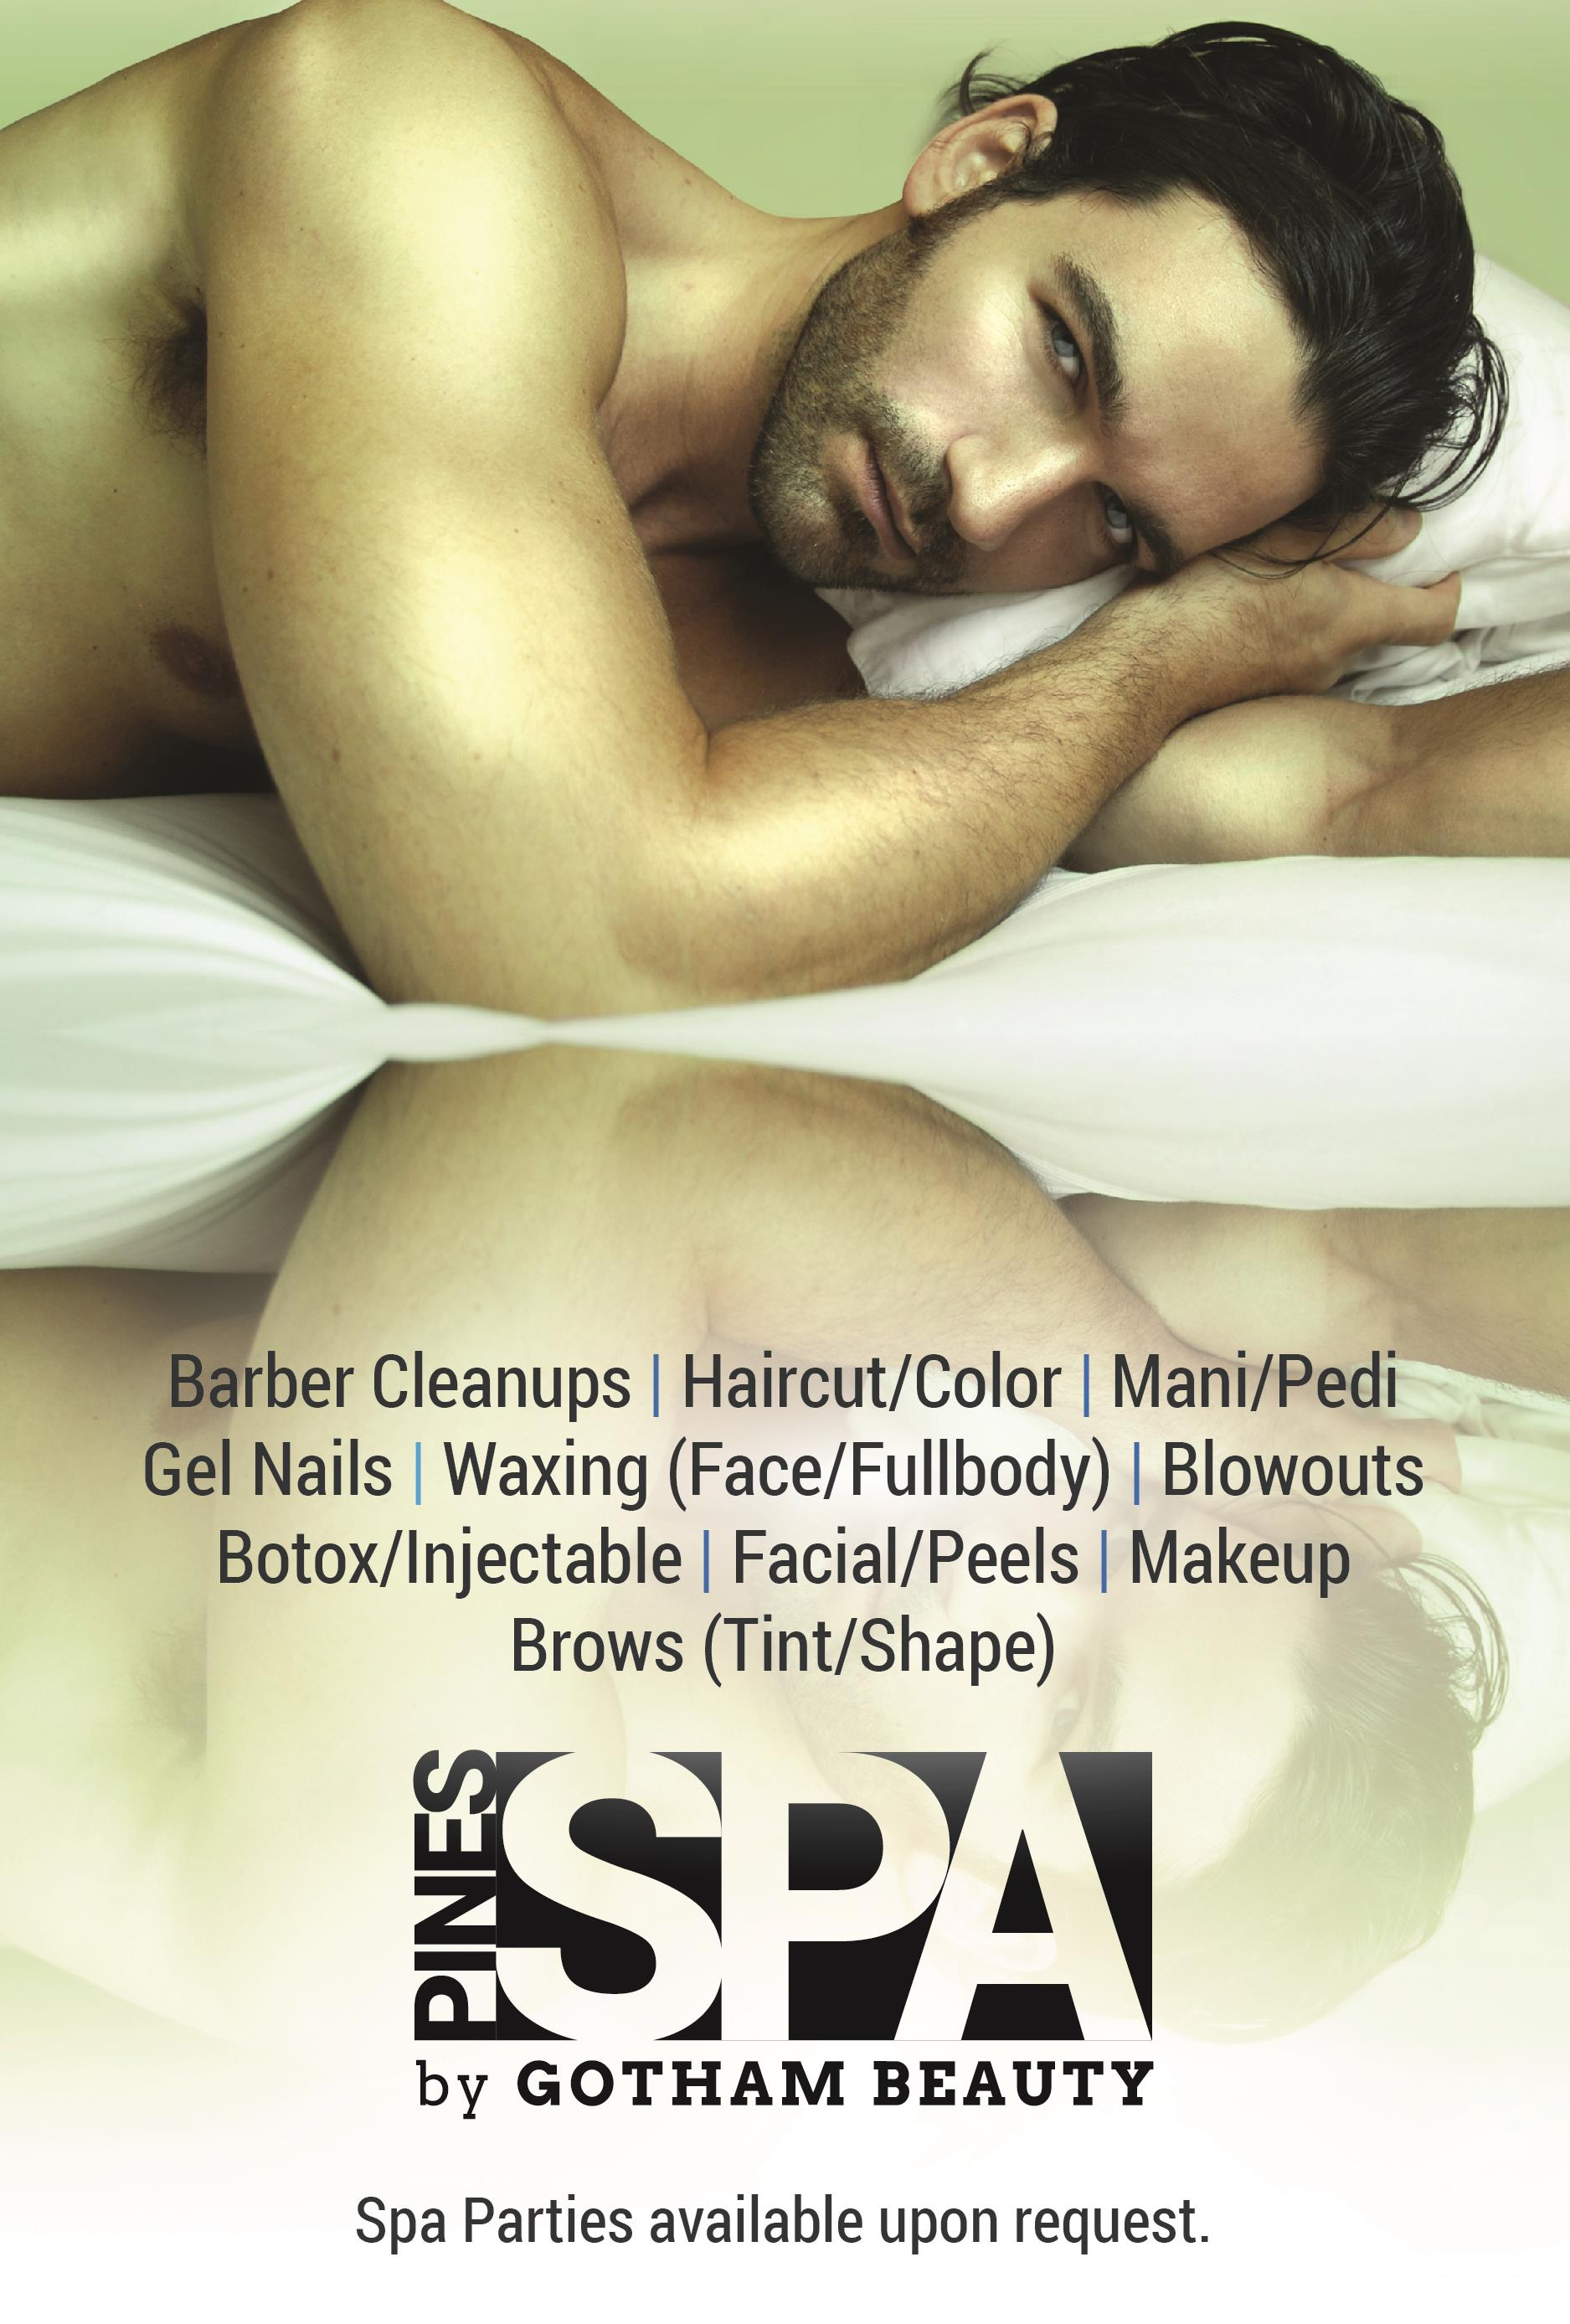 <b>SPA, Now Open</b><br>|NEW for '17<br>|by <b>Gotham Beauty</b>